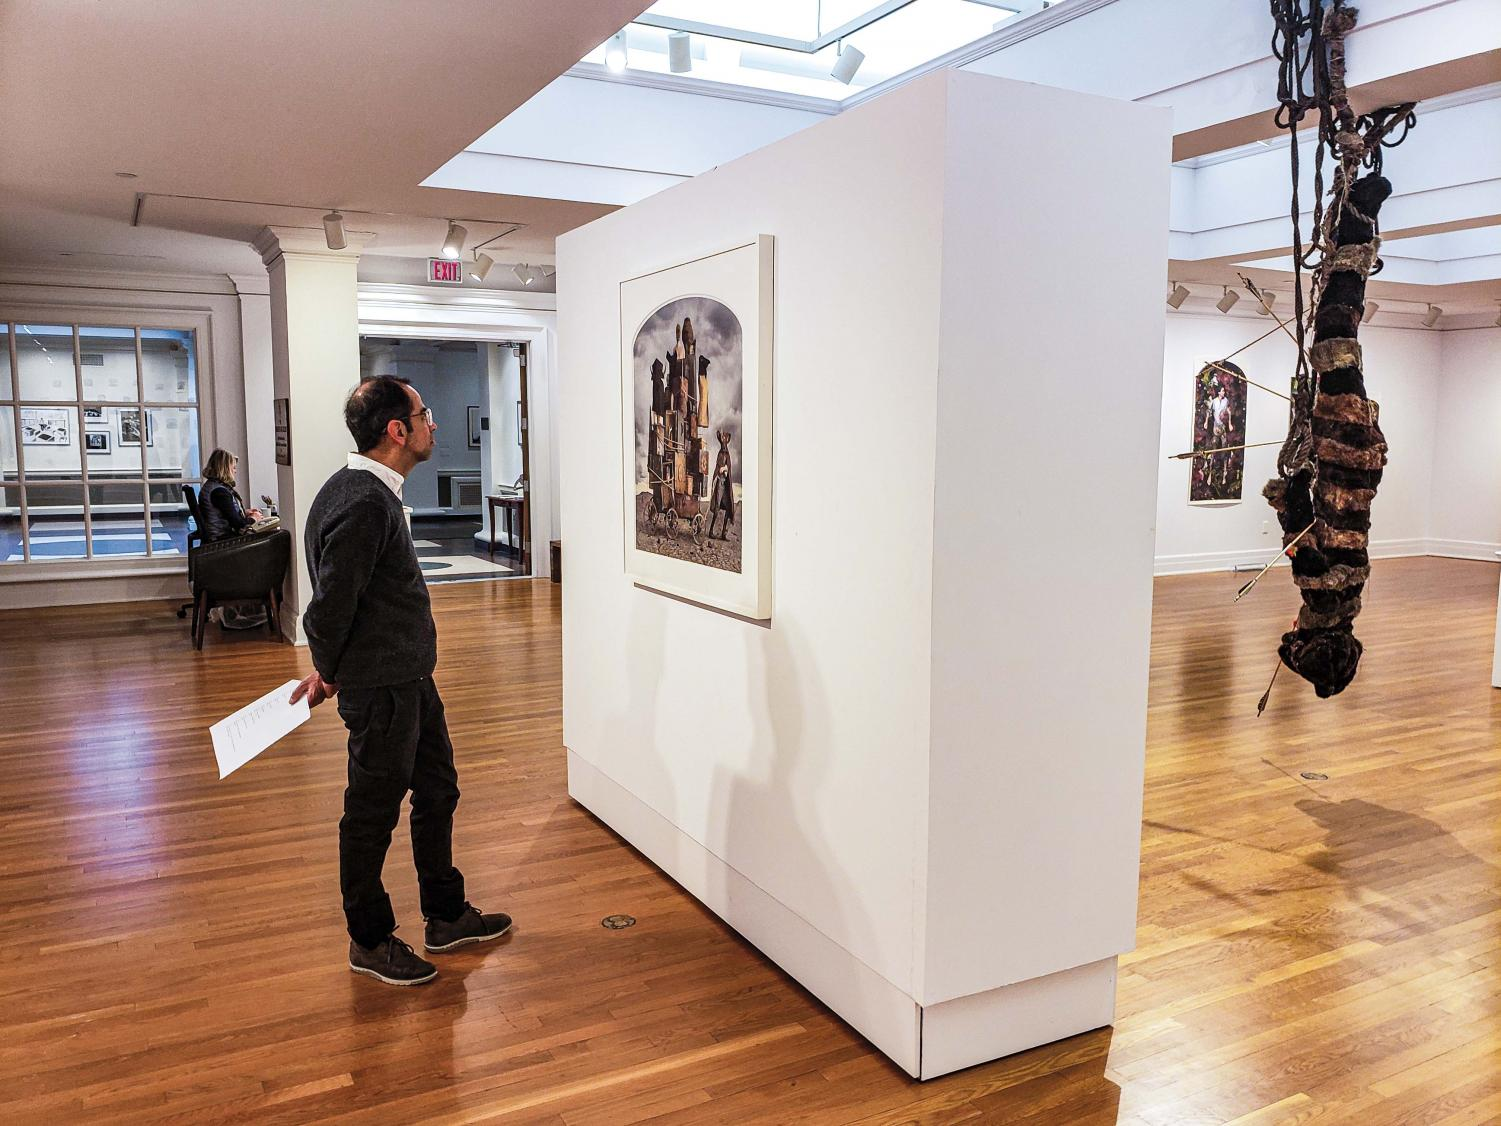 Francisco Barrios, Instructor in Spanish, takes in a scene from the gallery's newest exhibit.